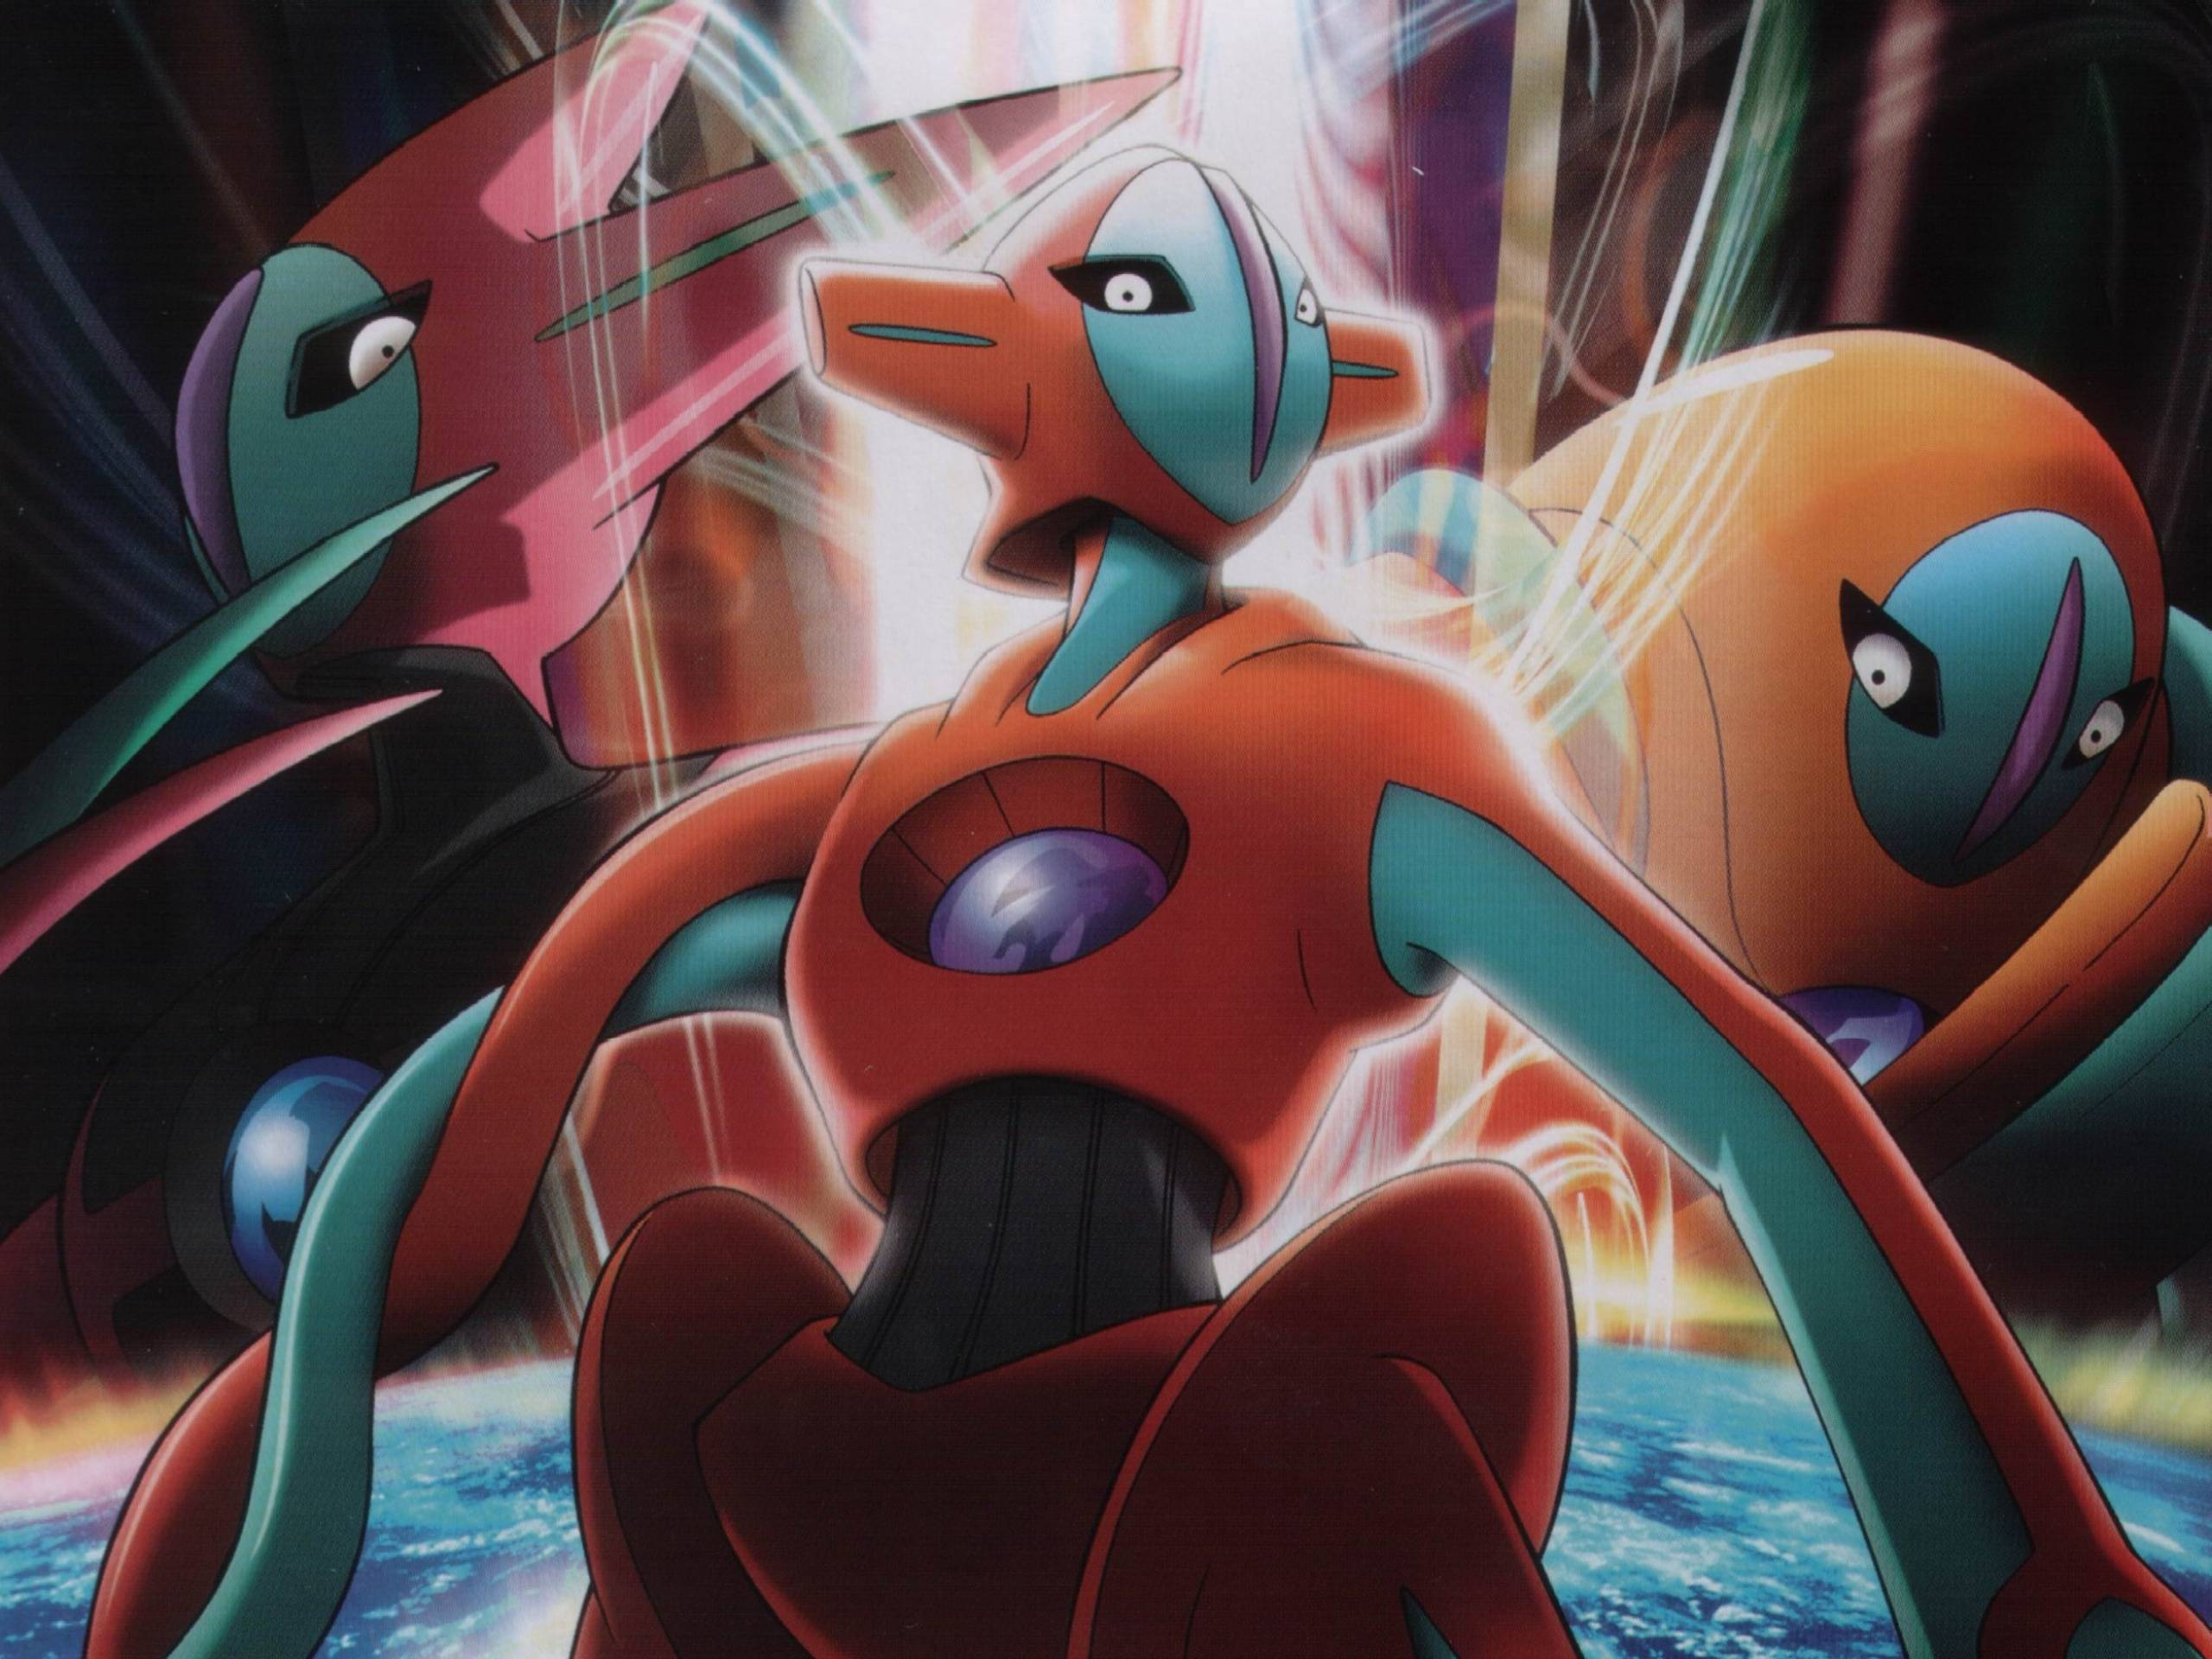 Cartoon Excellence – Pokemon: Destiny Deoxys